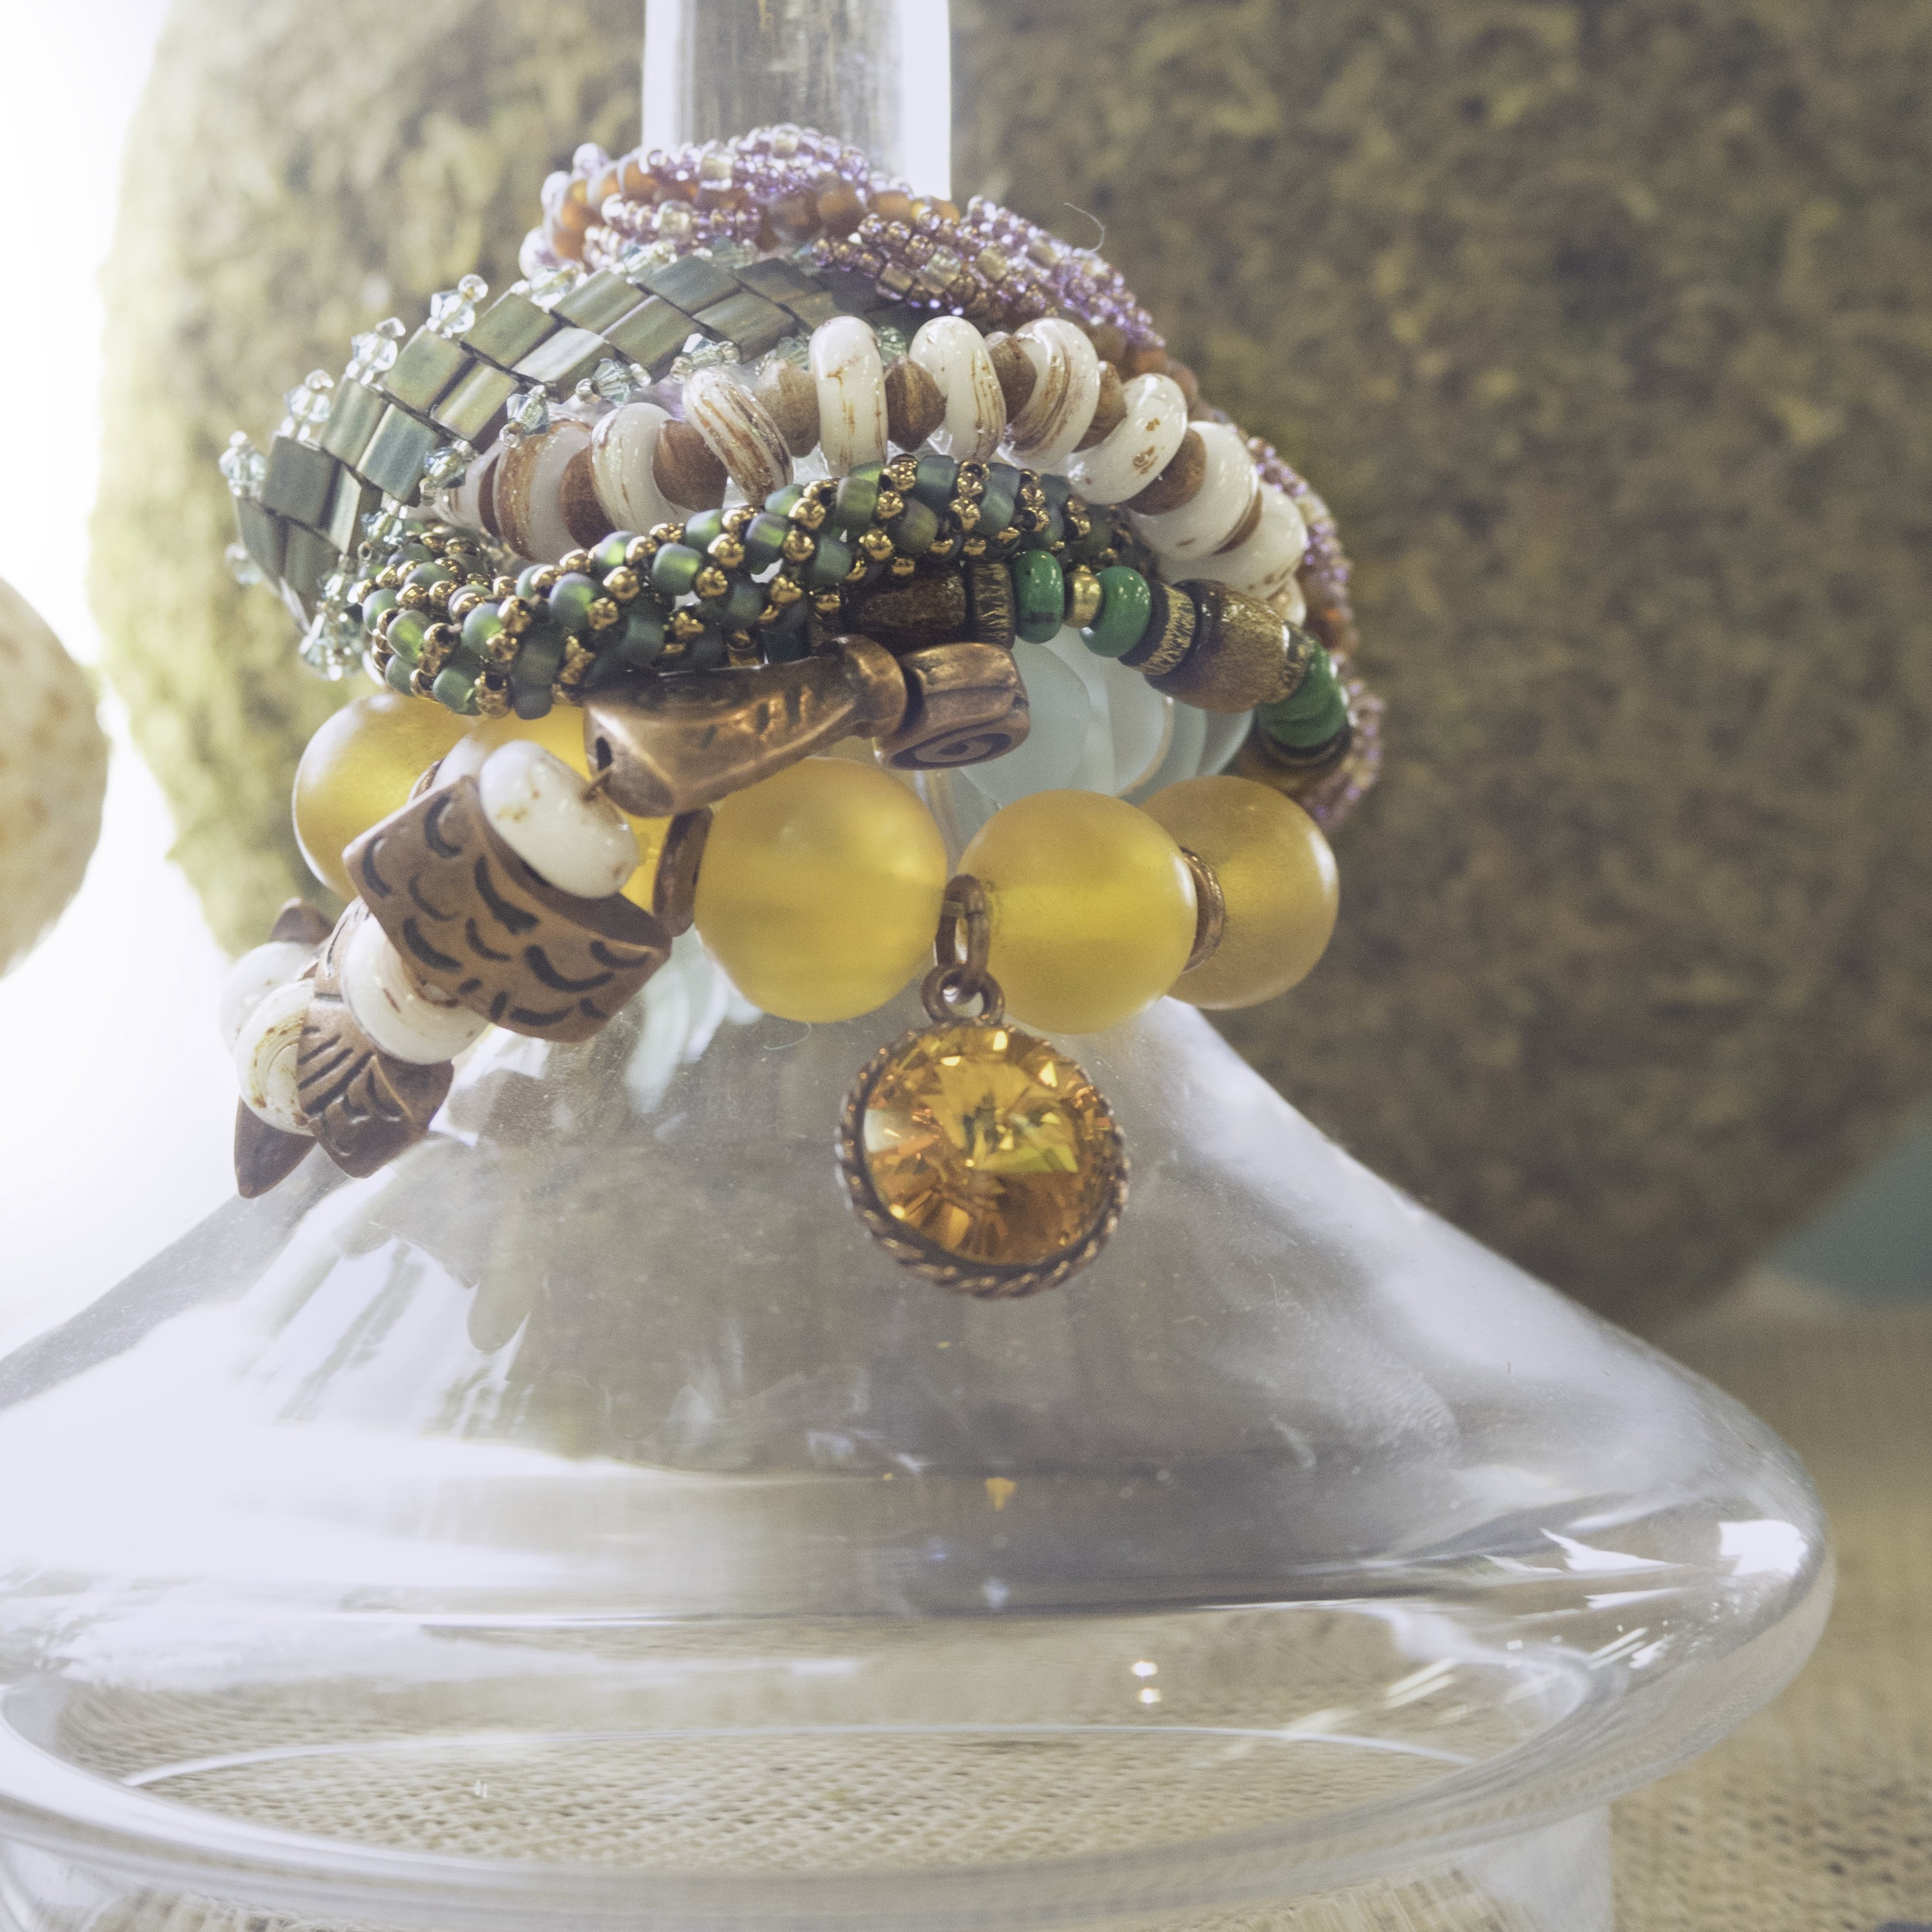 Seed beads Classes are also available, Call for more info and times.